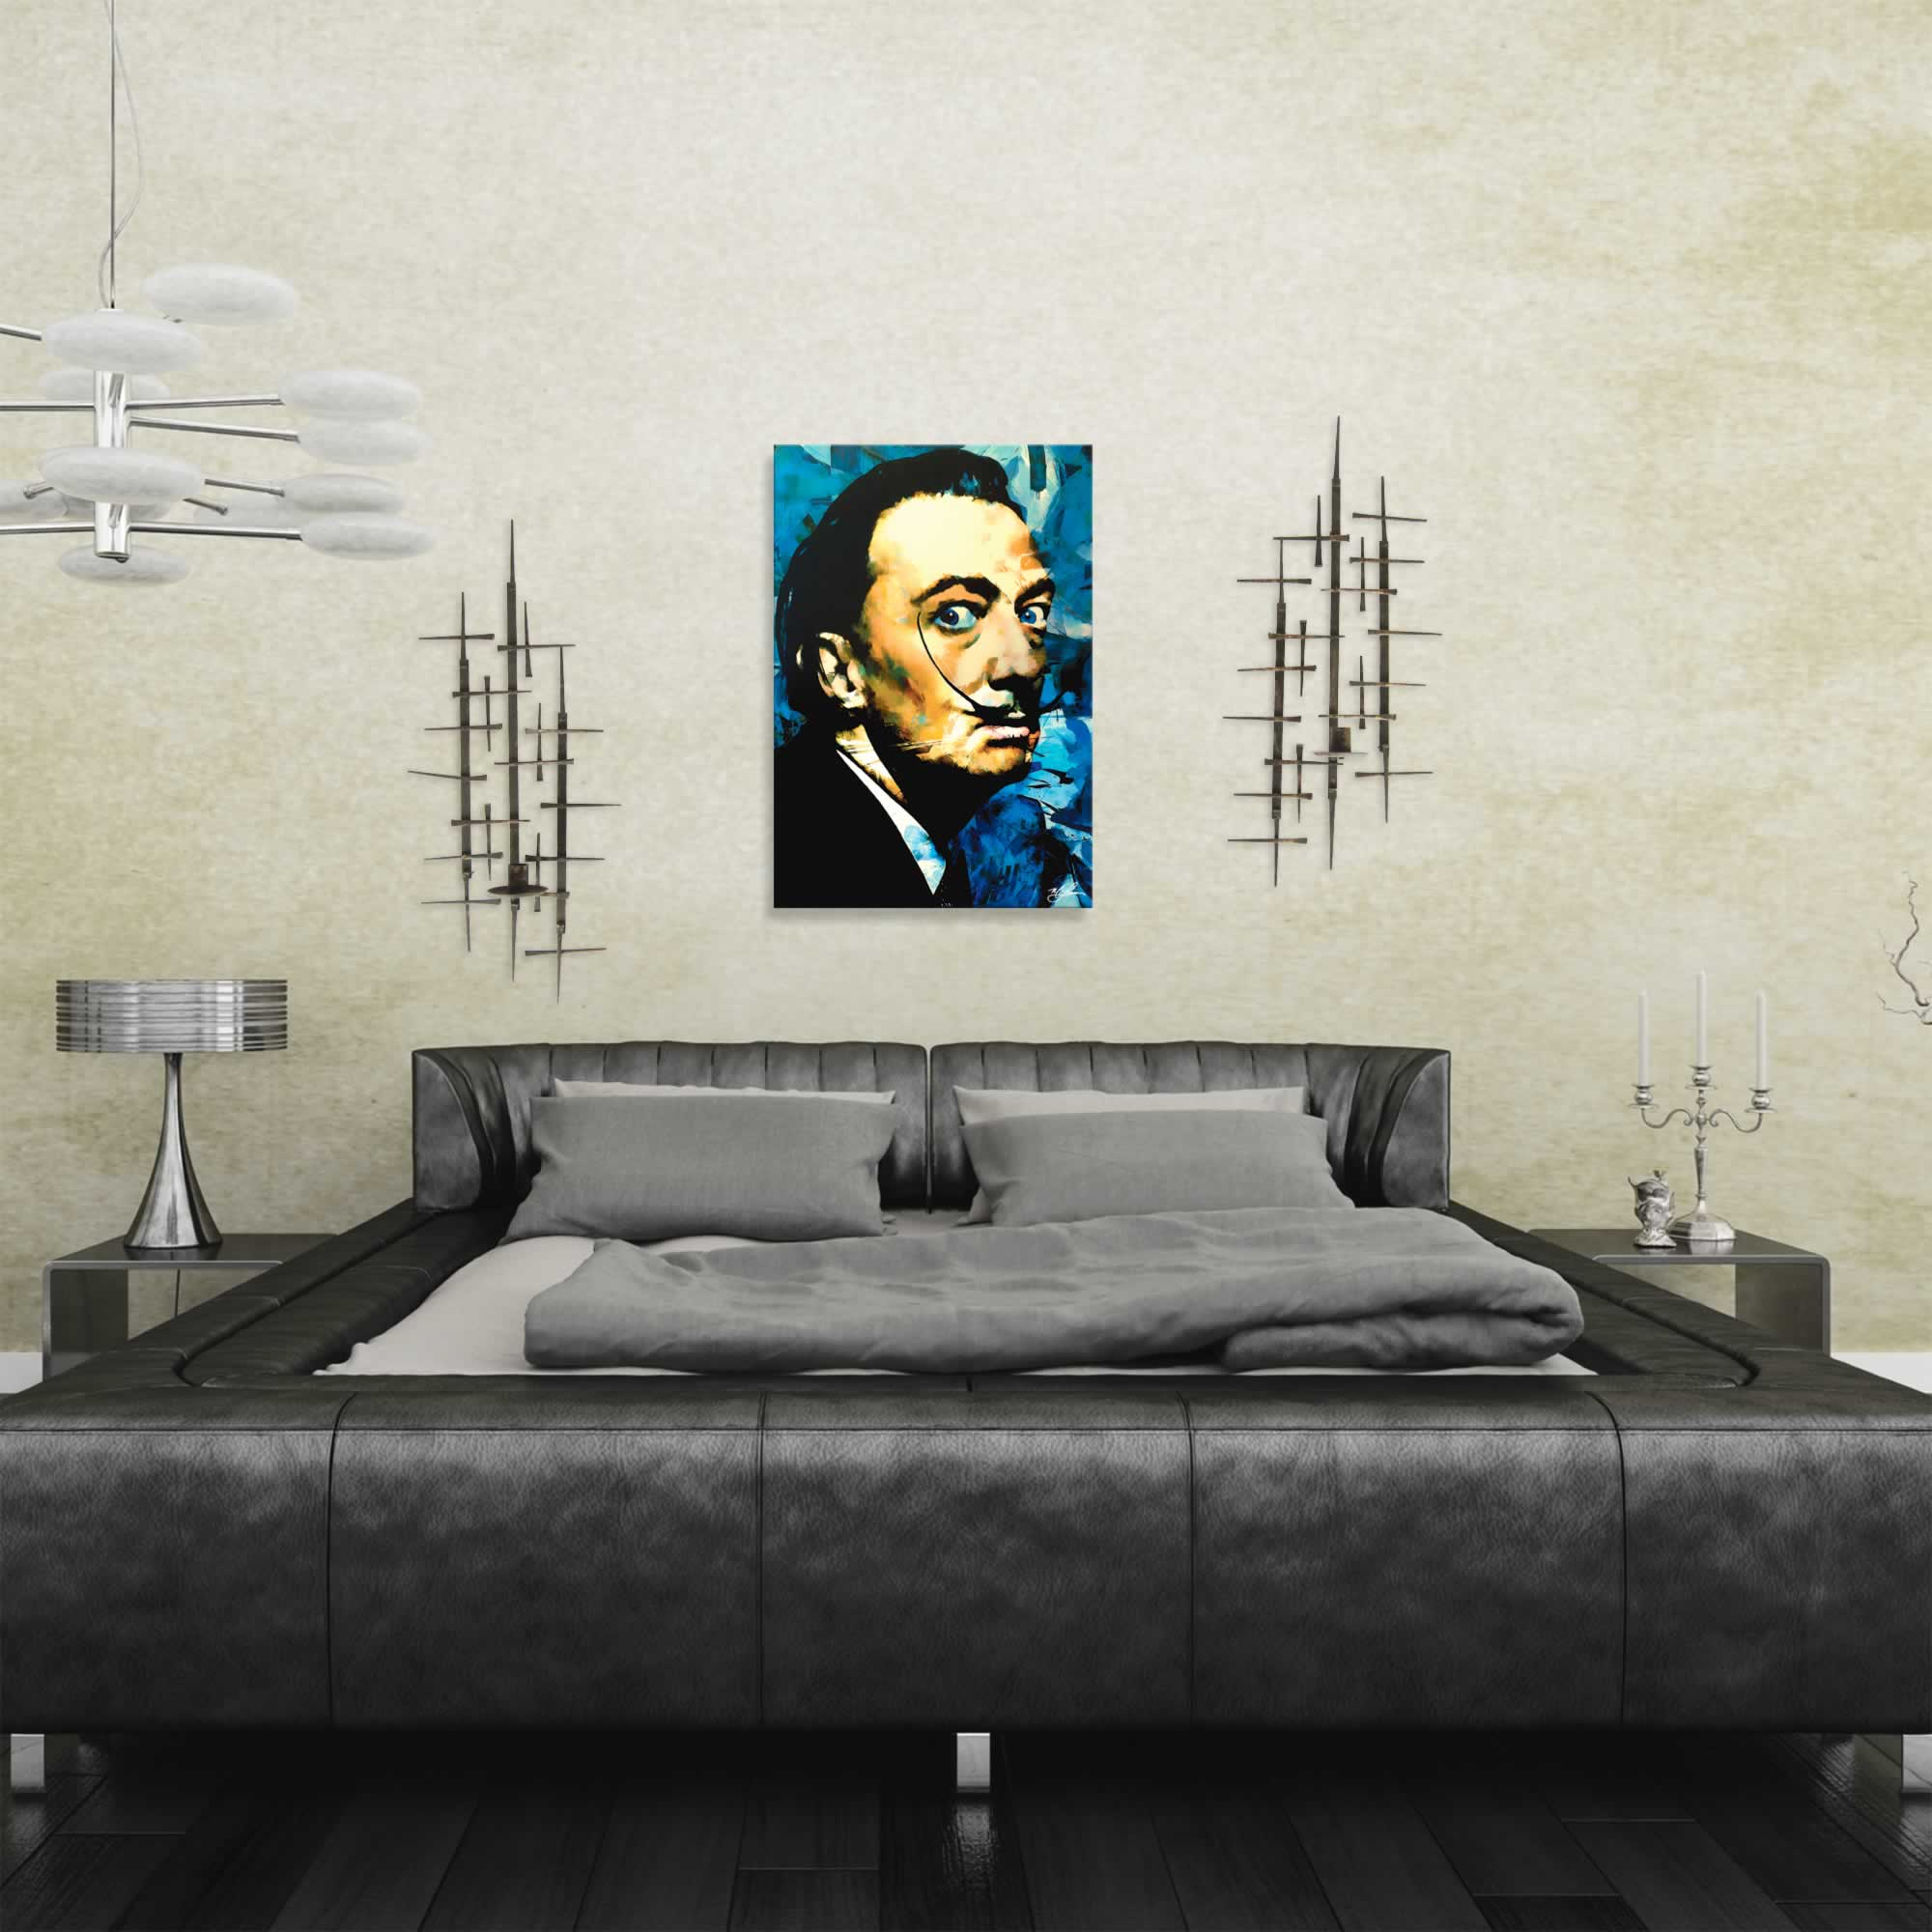 Salvador Dali Apparatus Man | Pop Art Painting by Mark Lewis, Signed & Numbered Limited Edition - ML0035